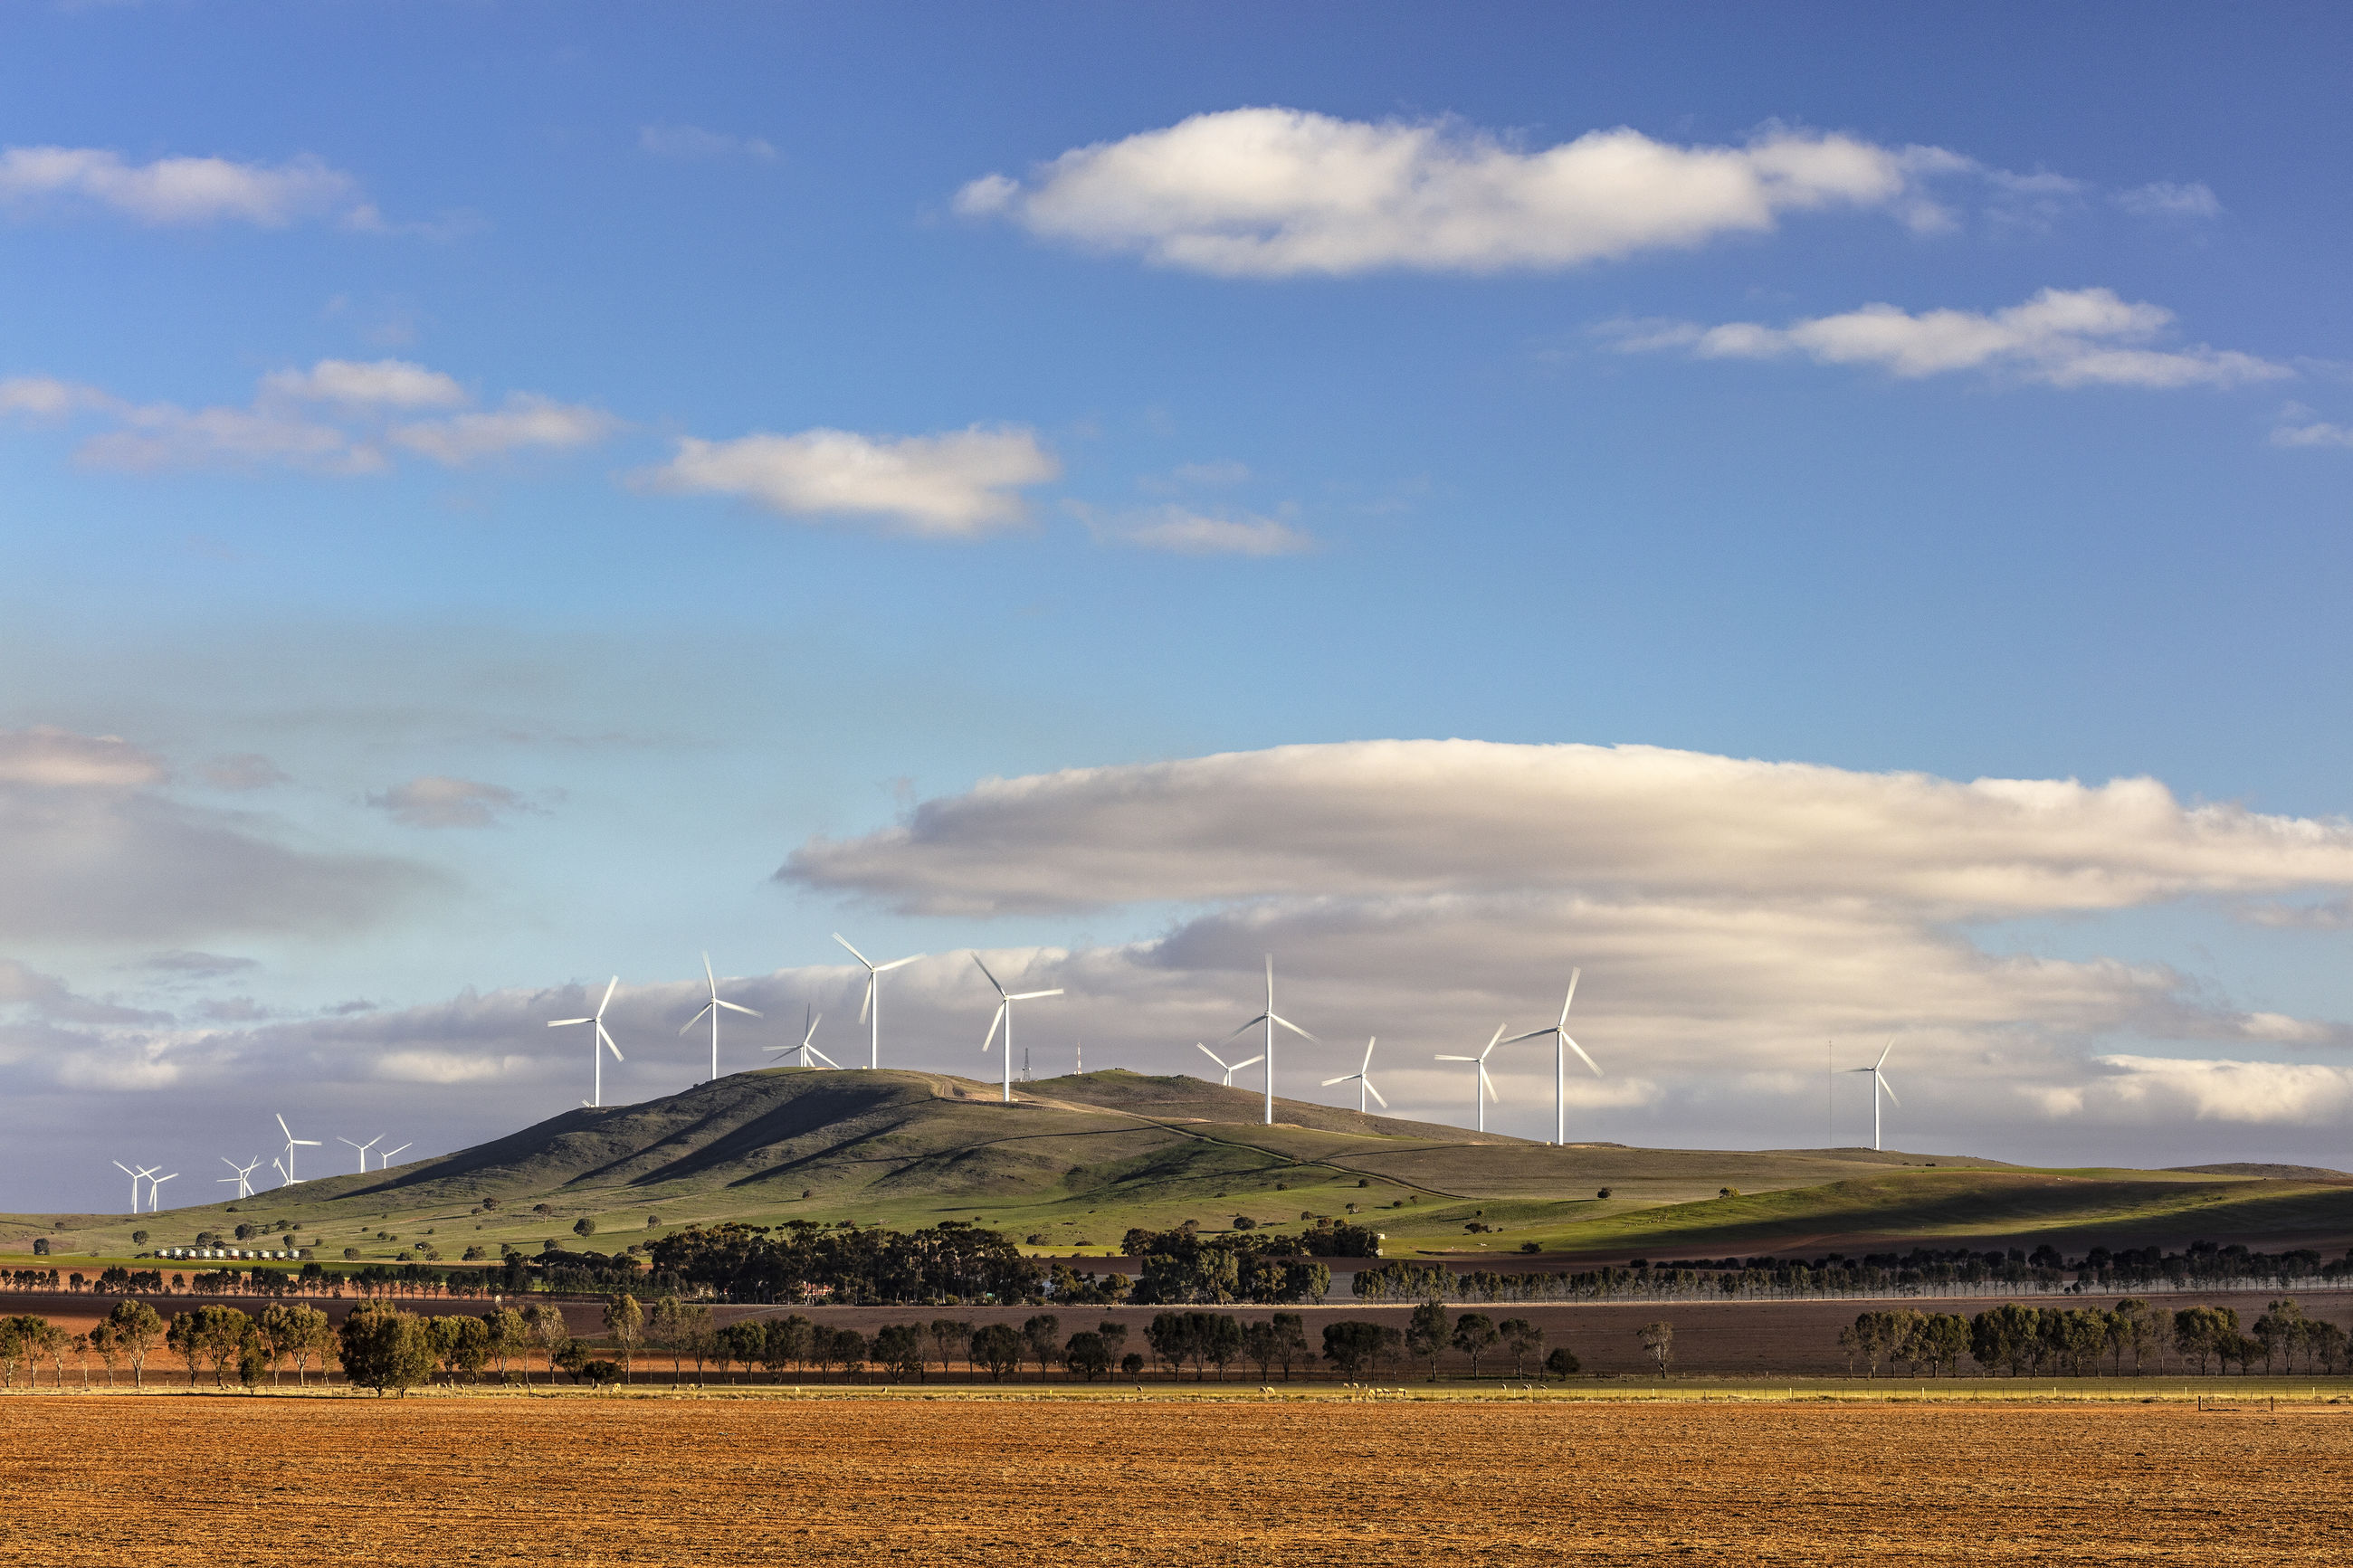 sky, environment, cloud - sky, turbine, wind turbine, landscape, renewable energy, fuel and power generation, land, alternative energy, wind power, environmental conservation, scenics - nature, beauty in nature, field, nature, day, rural scene, tranquility, tranquil scene, no people, outdoors, sustainable resources, power supply